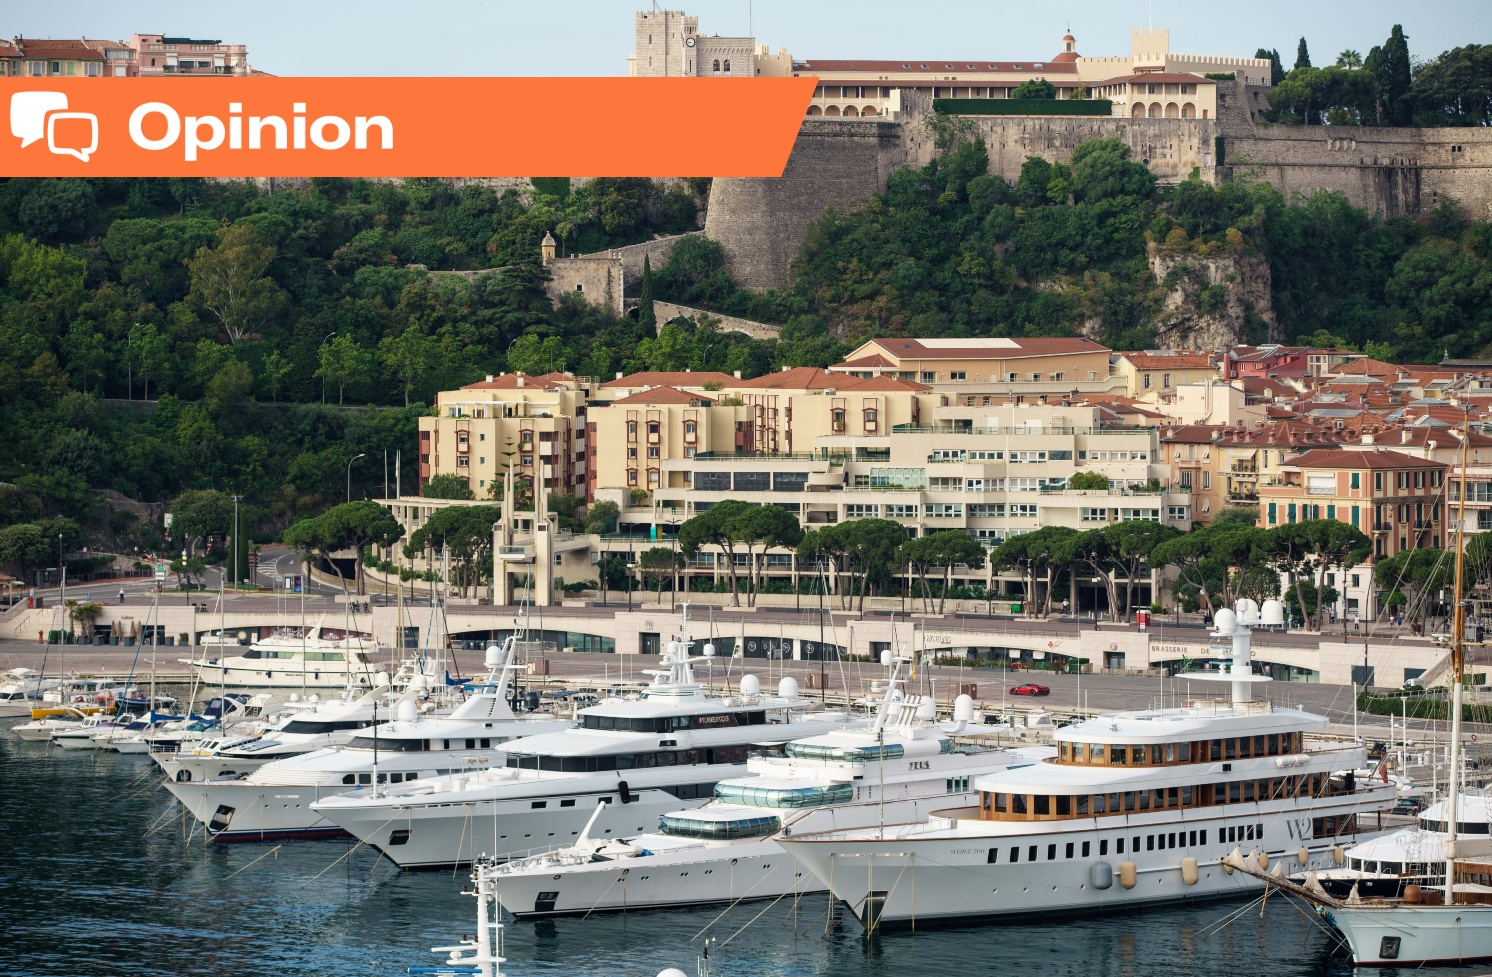 Opinion: The Monaco Grand Prix brings out the worst of Formula One